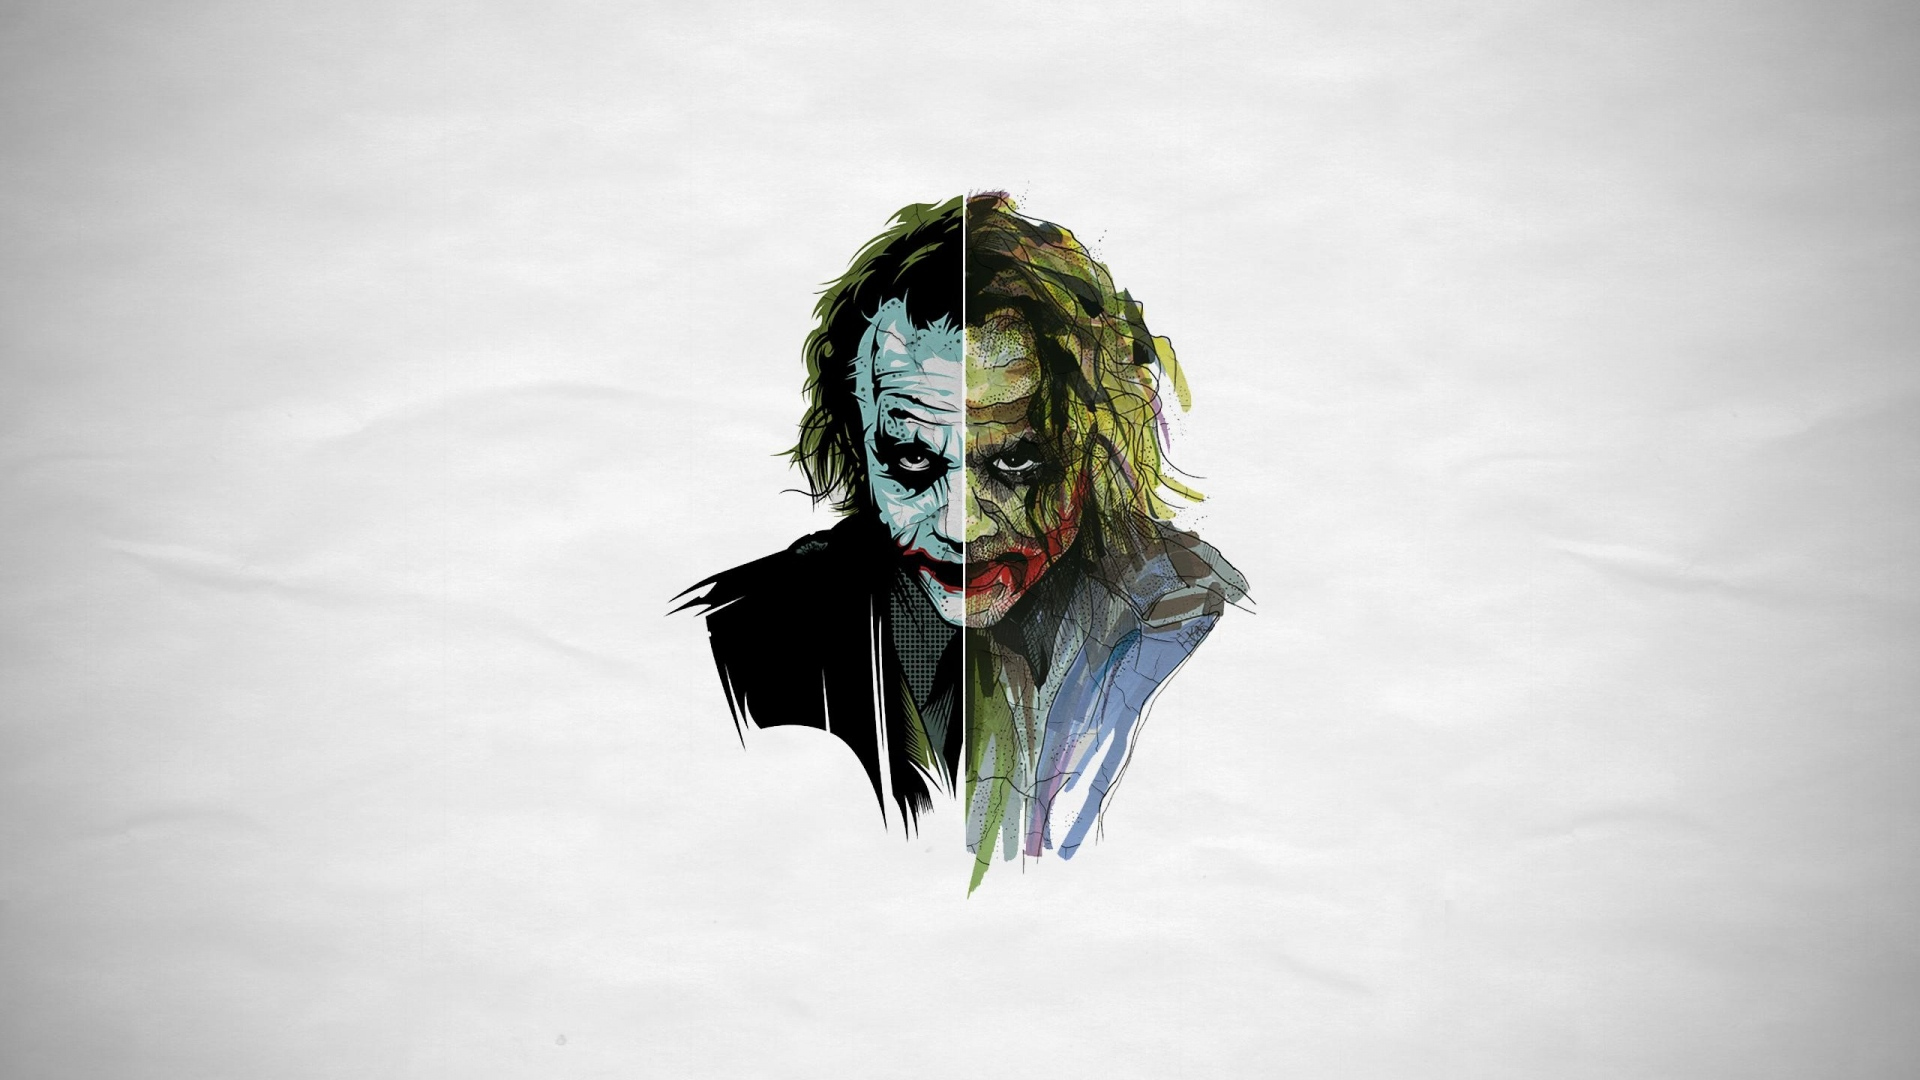 Full HD 1080p Joker Wallpapers HD, Desktop Backgrounds 1920x1080